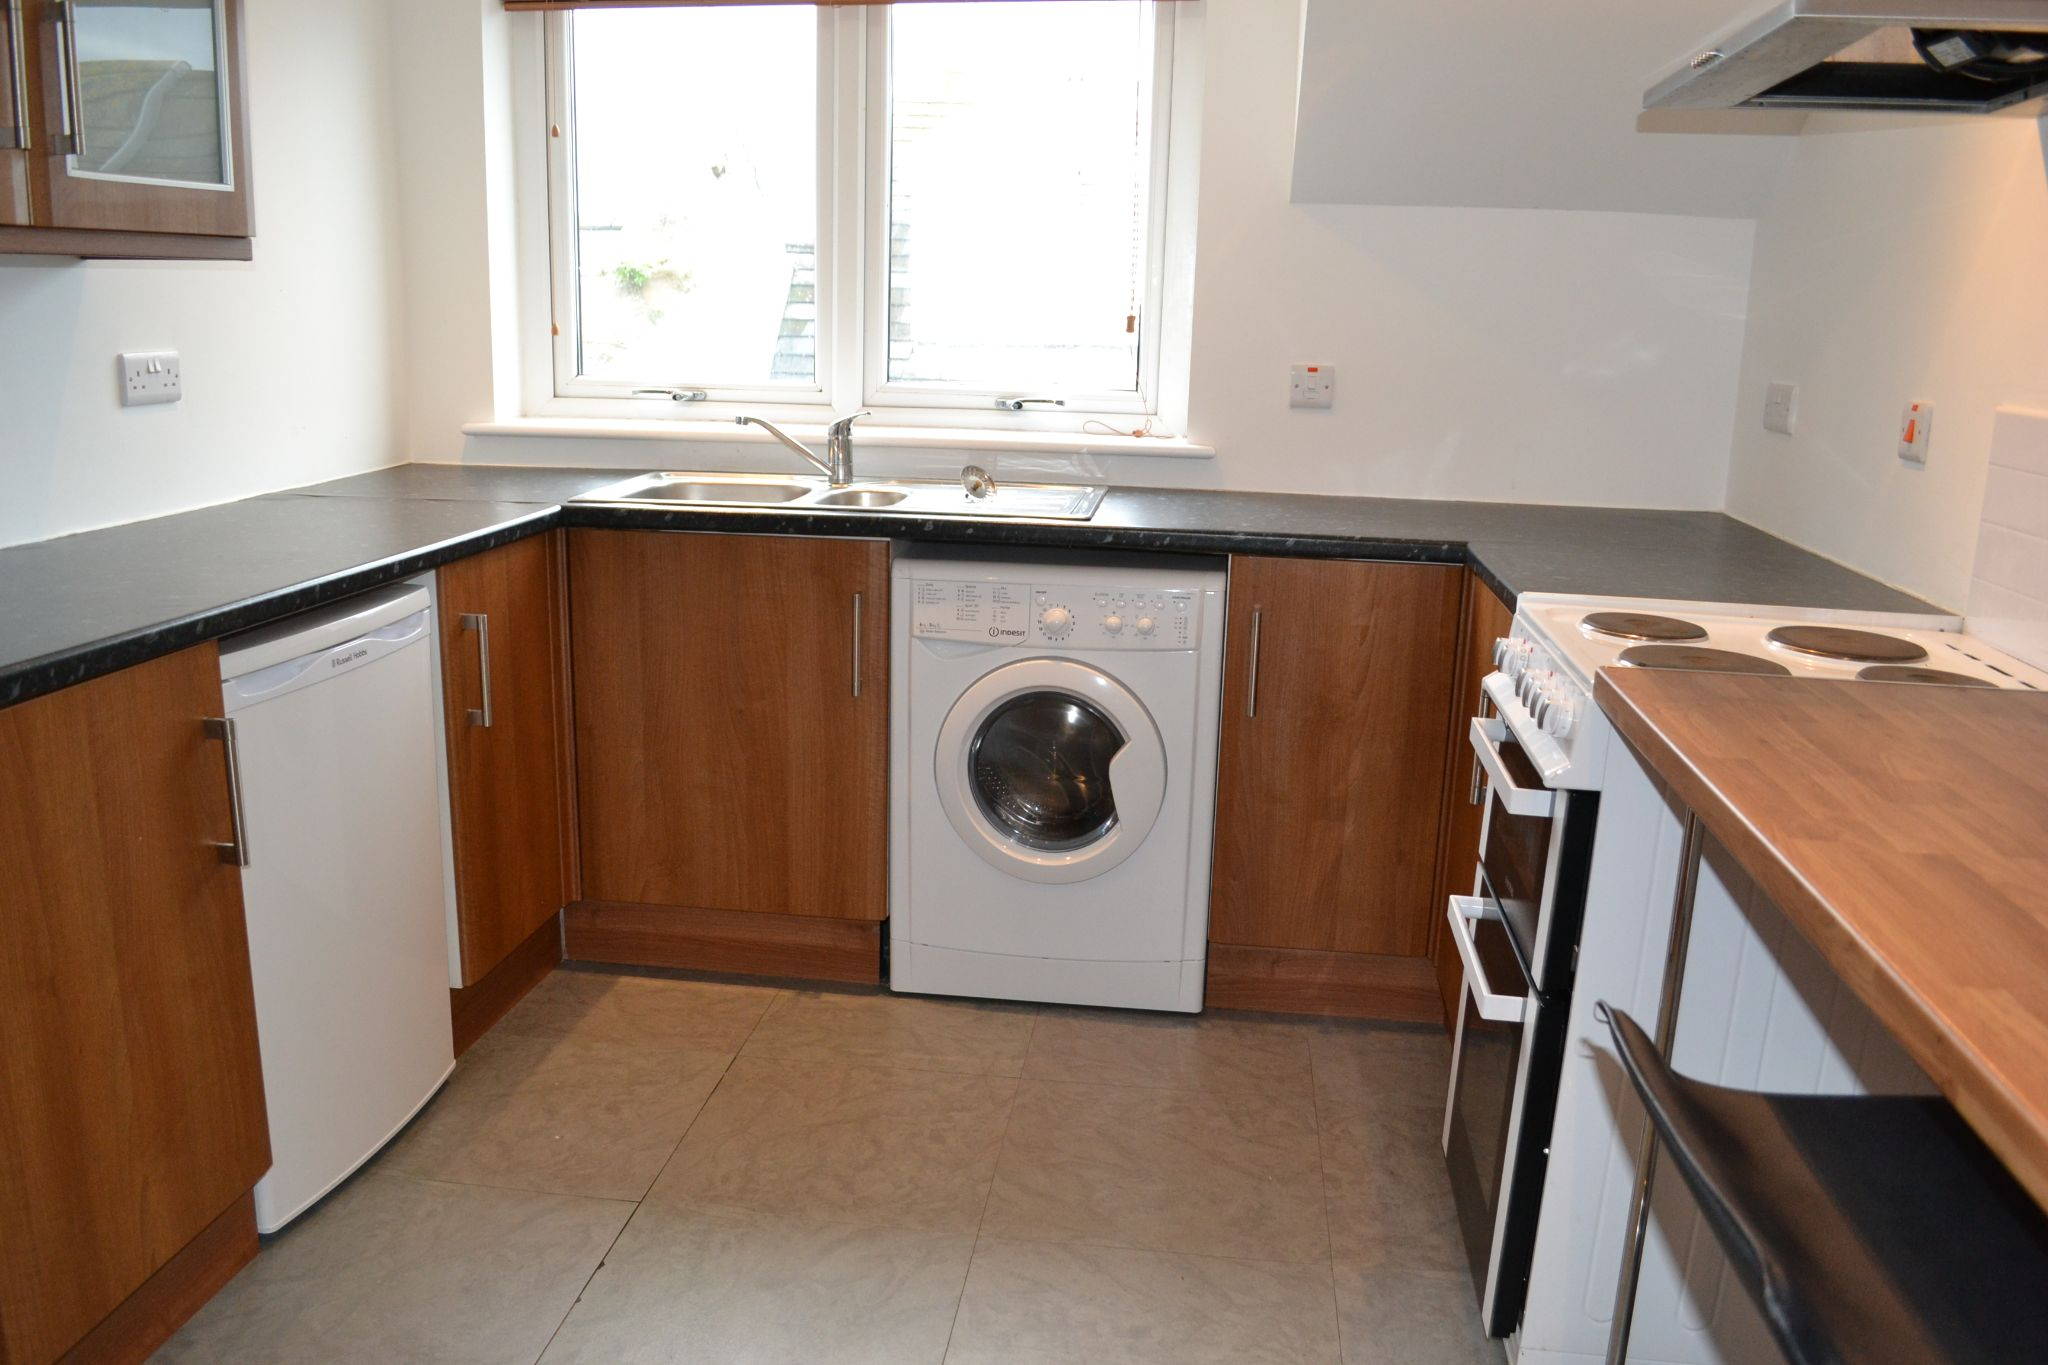 Apartment Flat/apartment To Let in Castletown - Property photograph